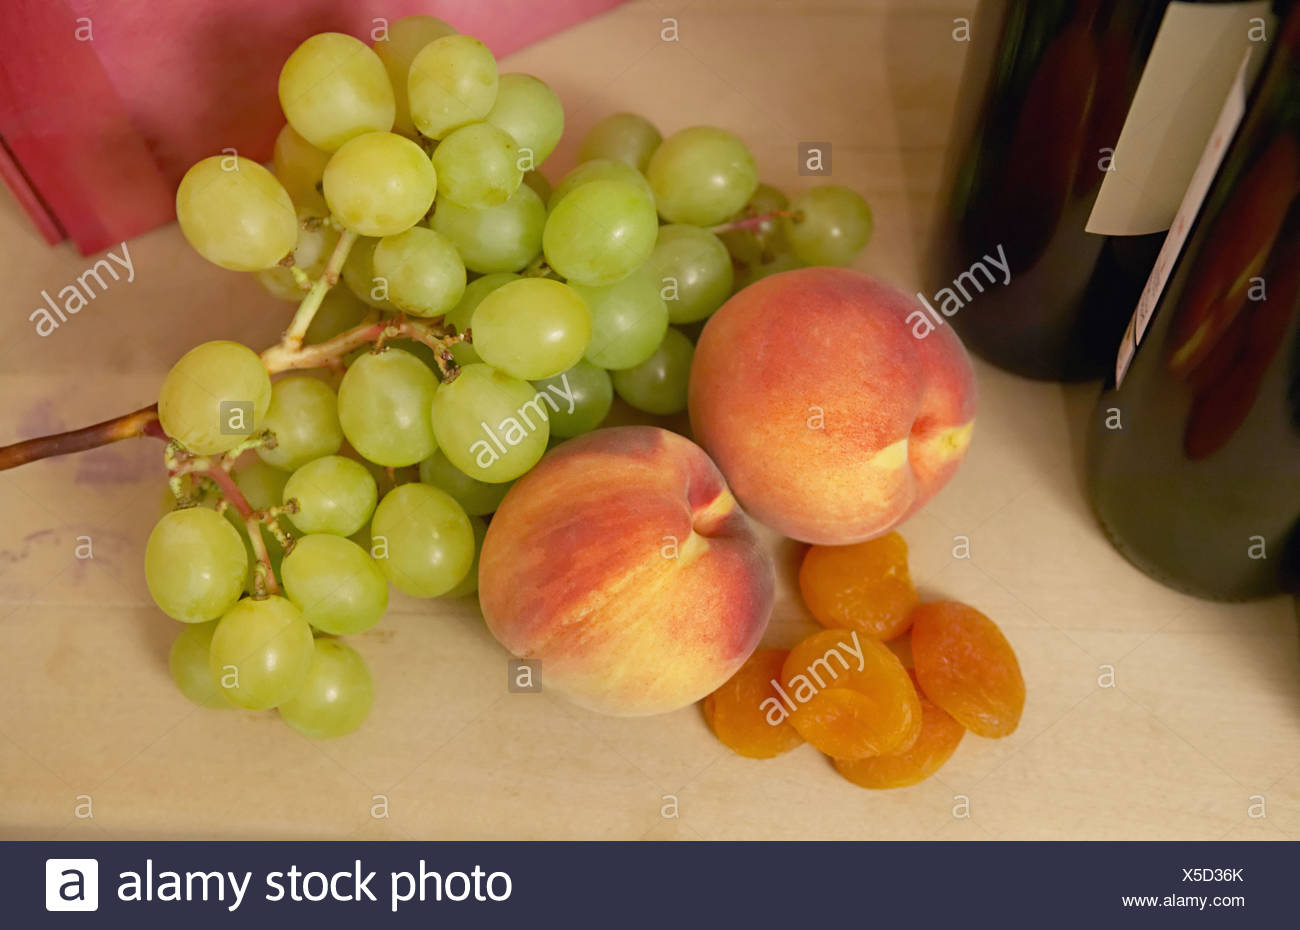 Peaches and grapes - Stock Image